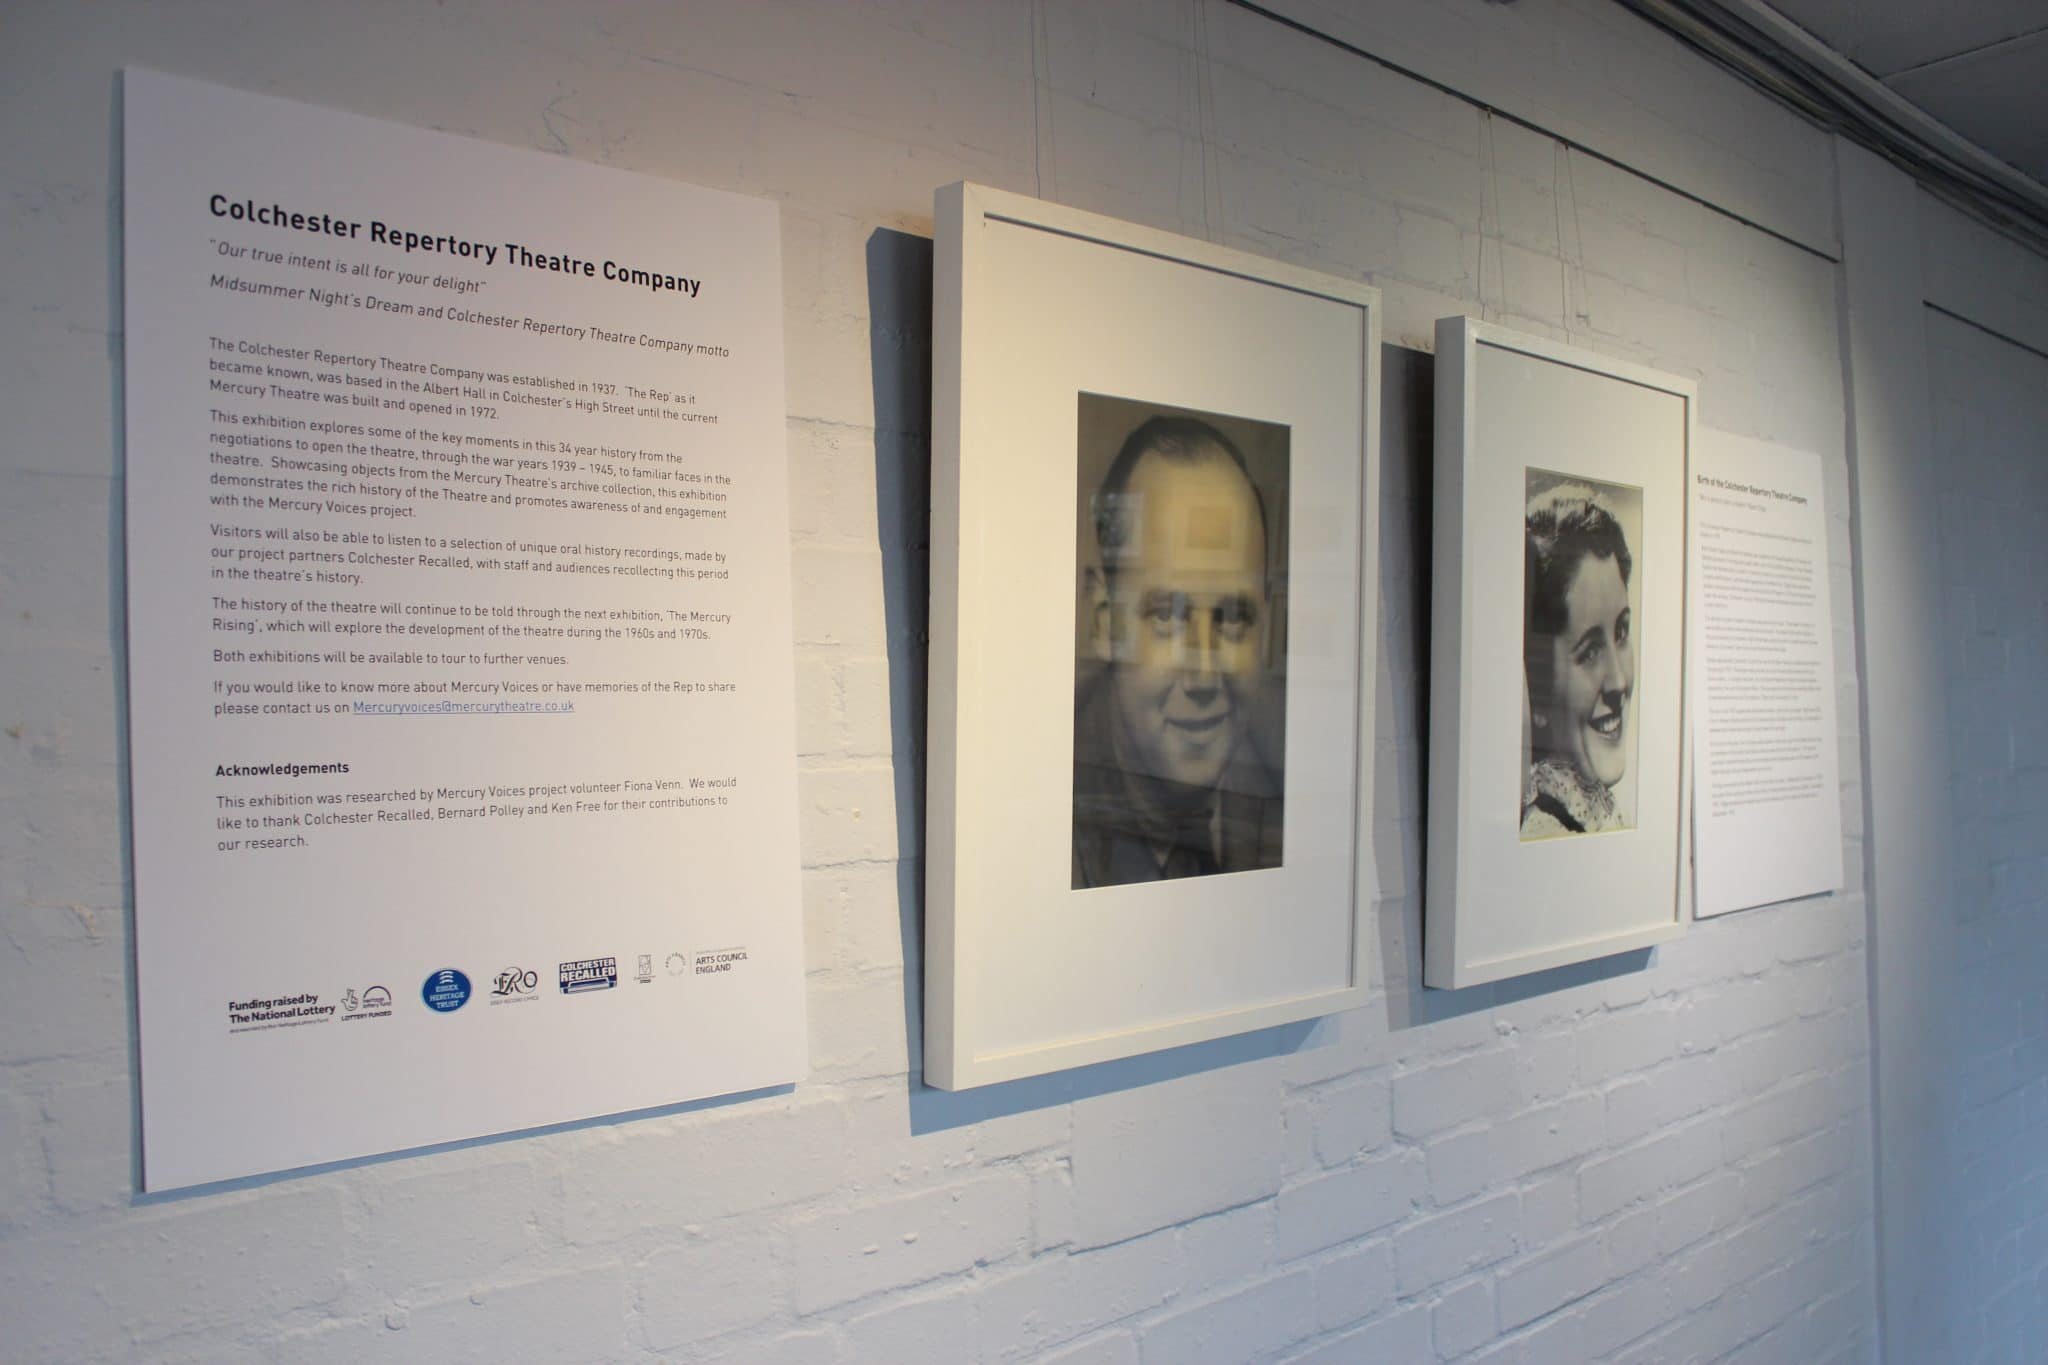 A display about Robert Digby and Beatrice Radley, founders of the Mercury